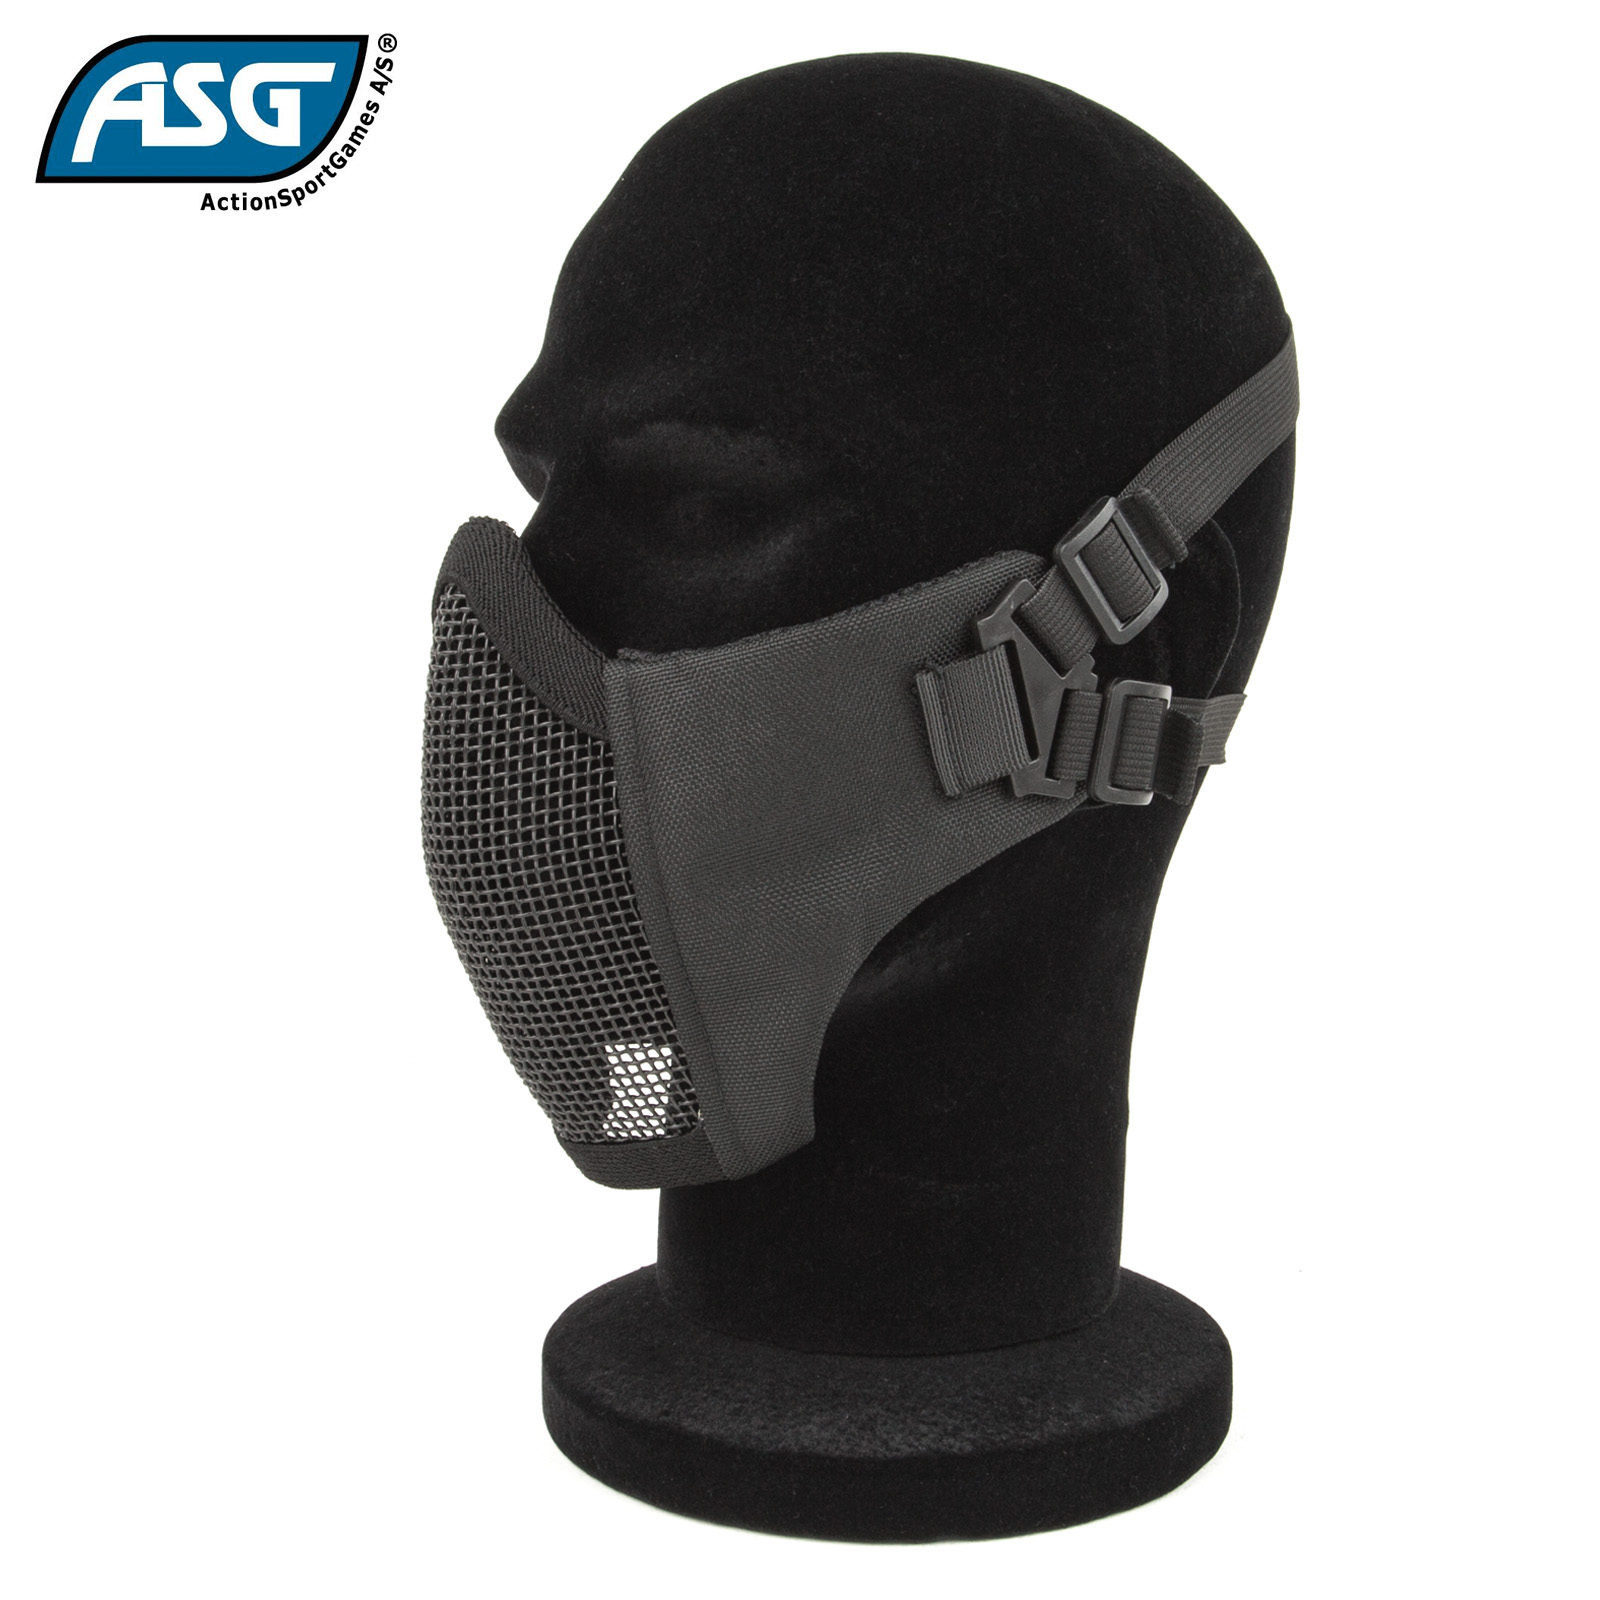 Half Face Mesh Mask Black with Cheek Pads ASG